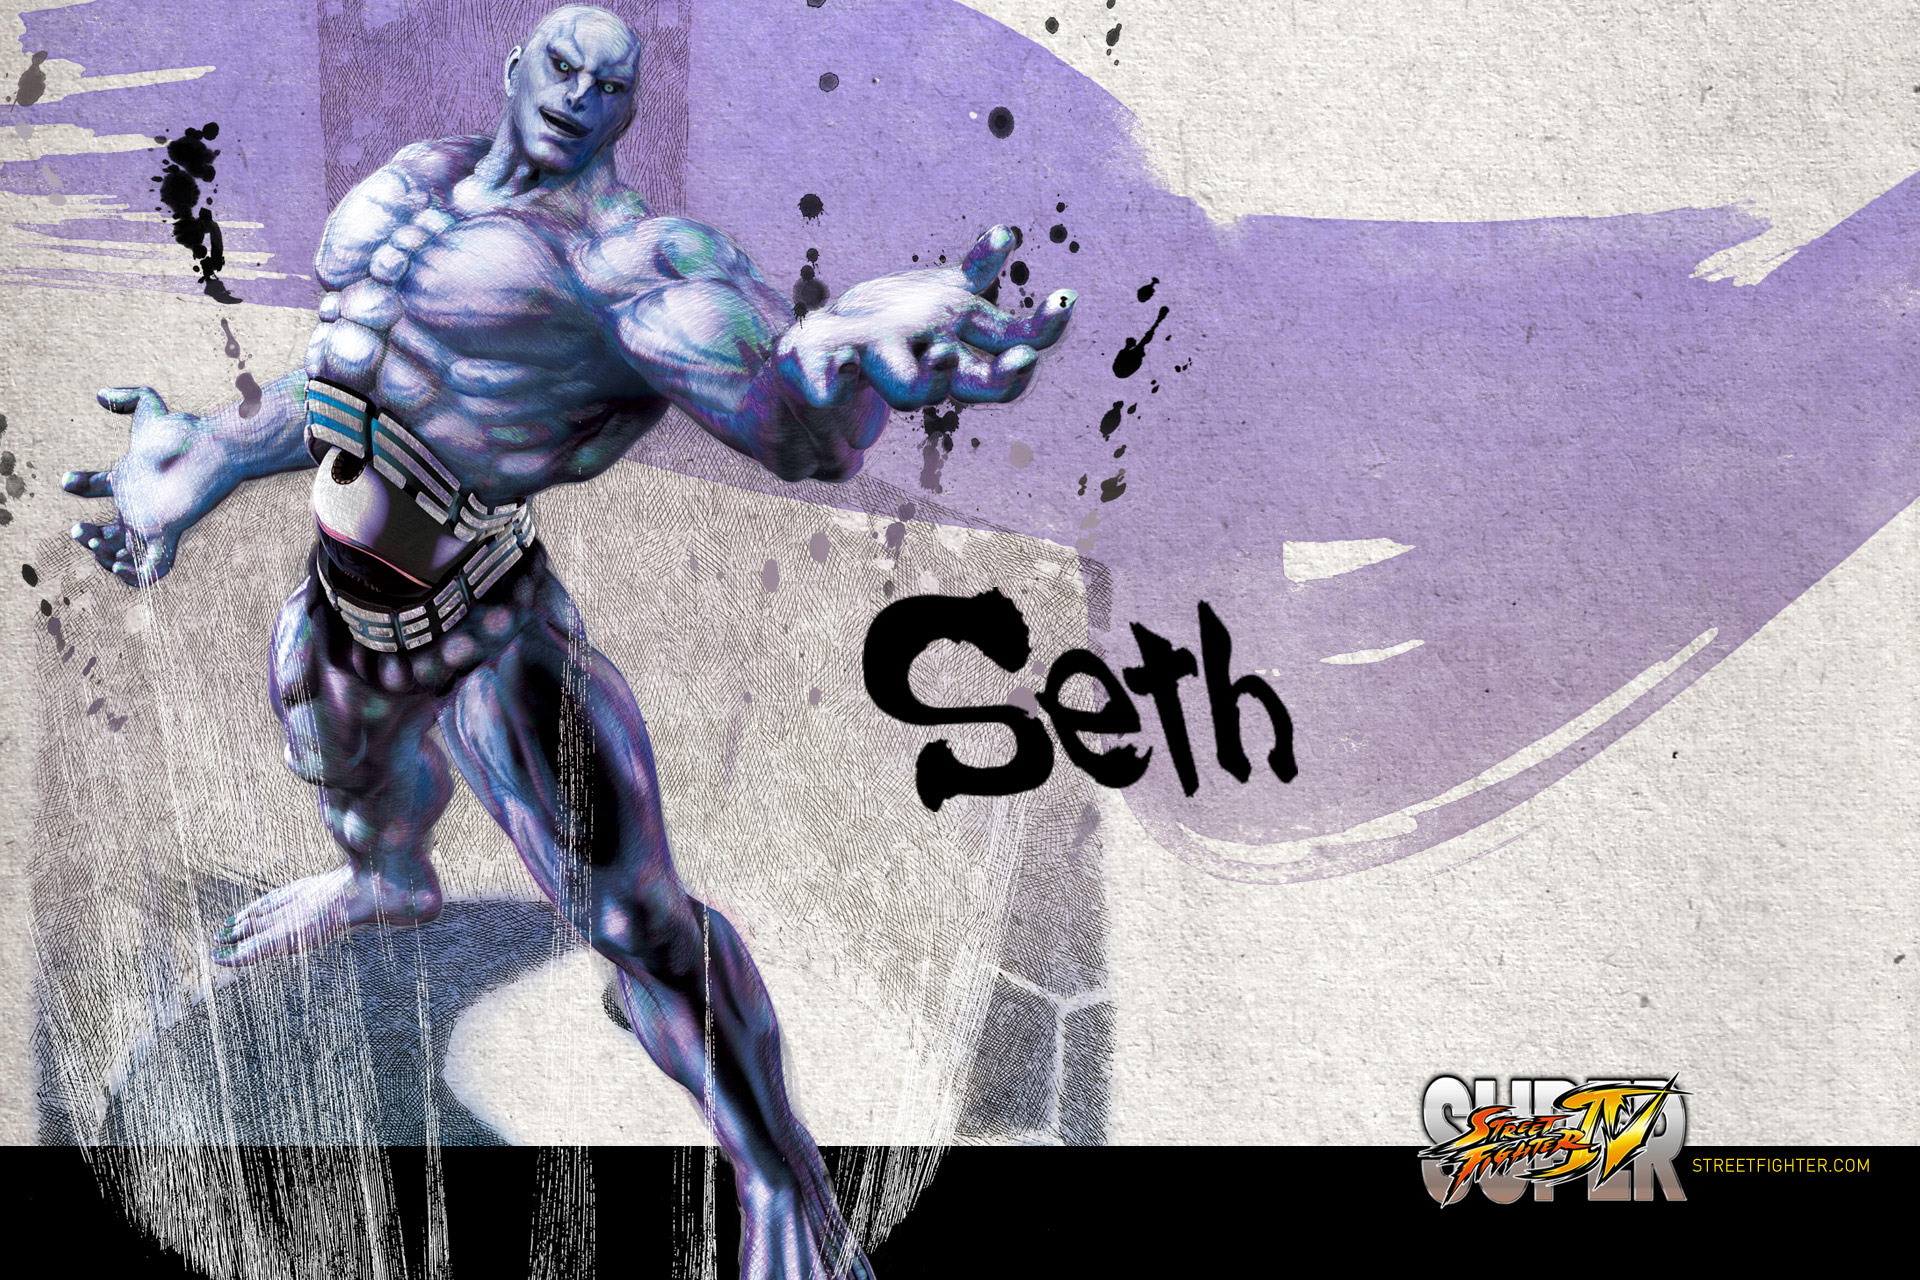 seth super street fighter 4 wallpaper